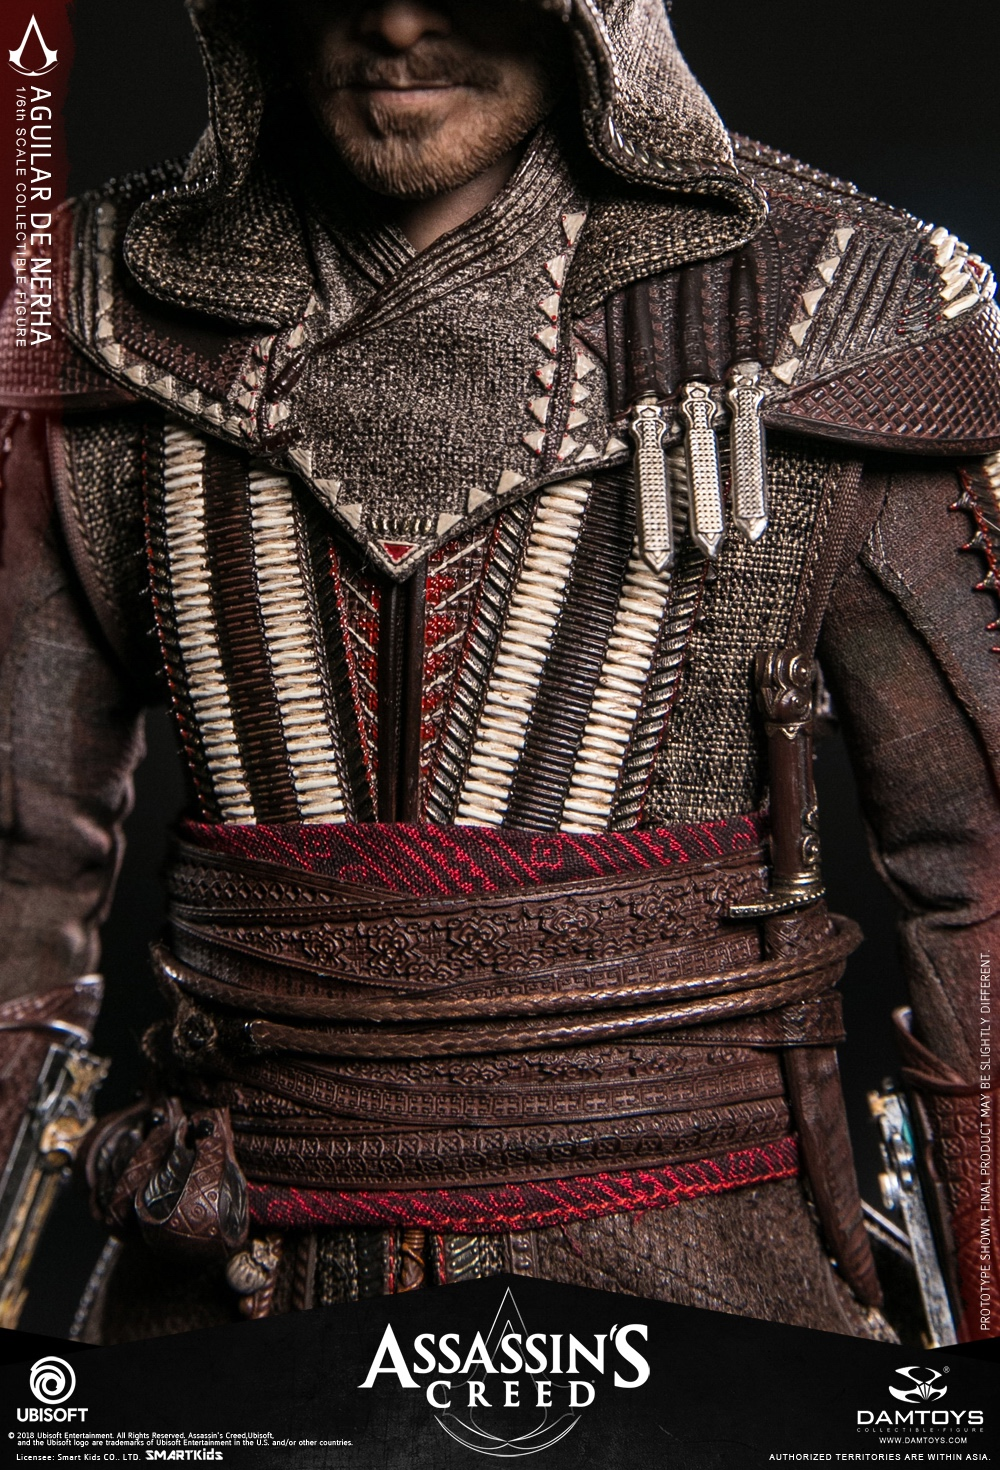 NEW PRODUCT: Damtoys–Assassin's Creed –1/6th scale Aguilar Collectible Figure Specifications 130716gwz5p888rqp9frzp